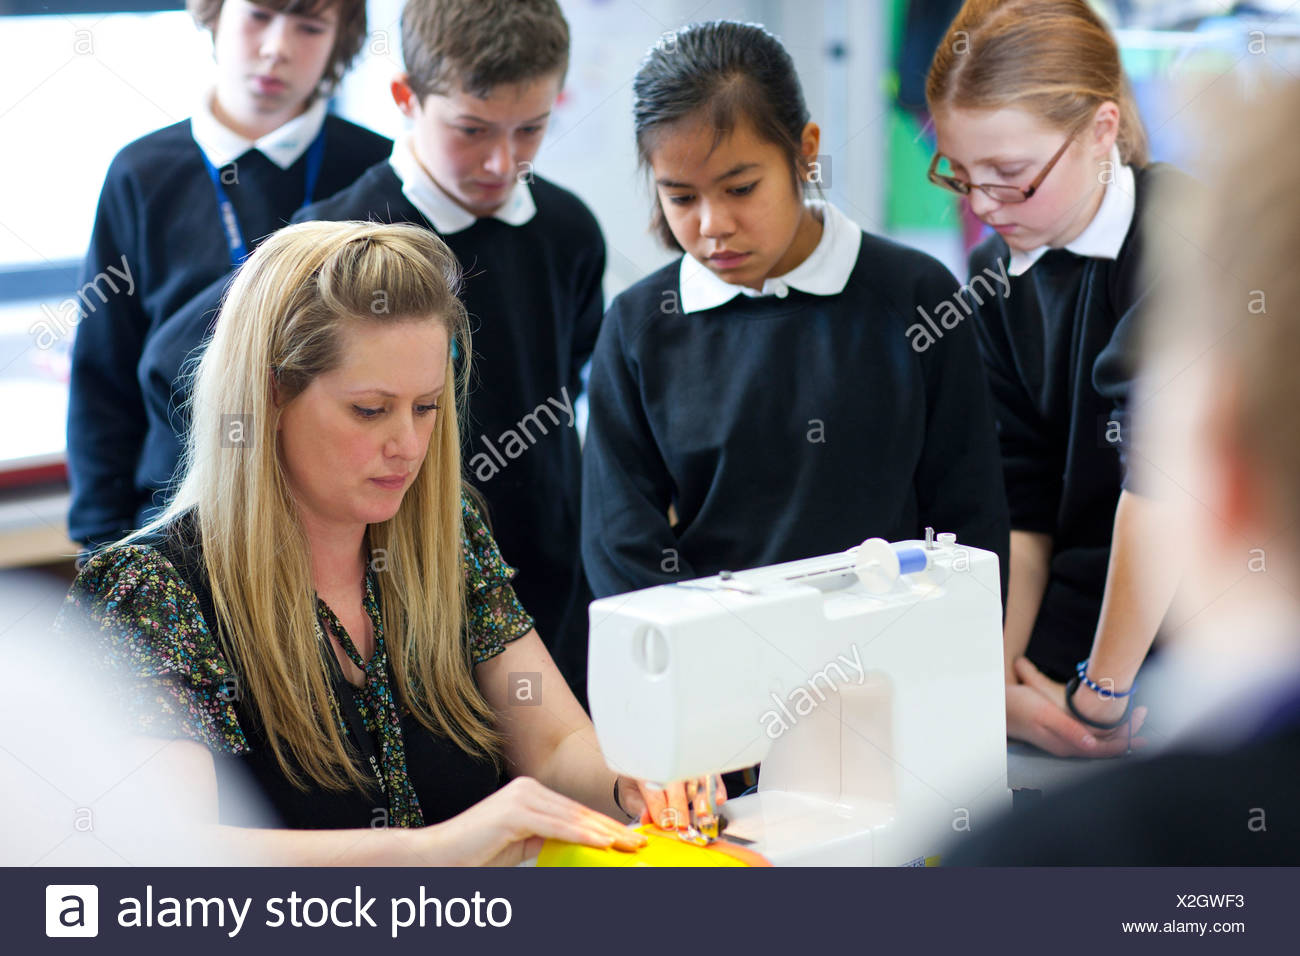 Students watch teacher use sewing machine in classroom - Stock Image